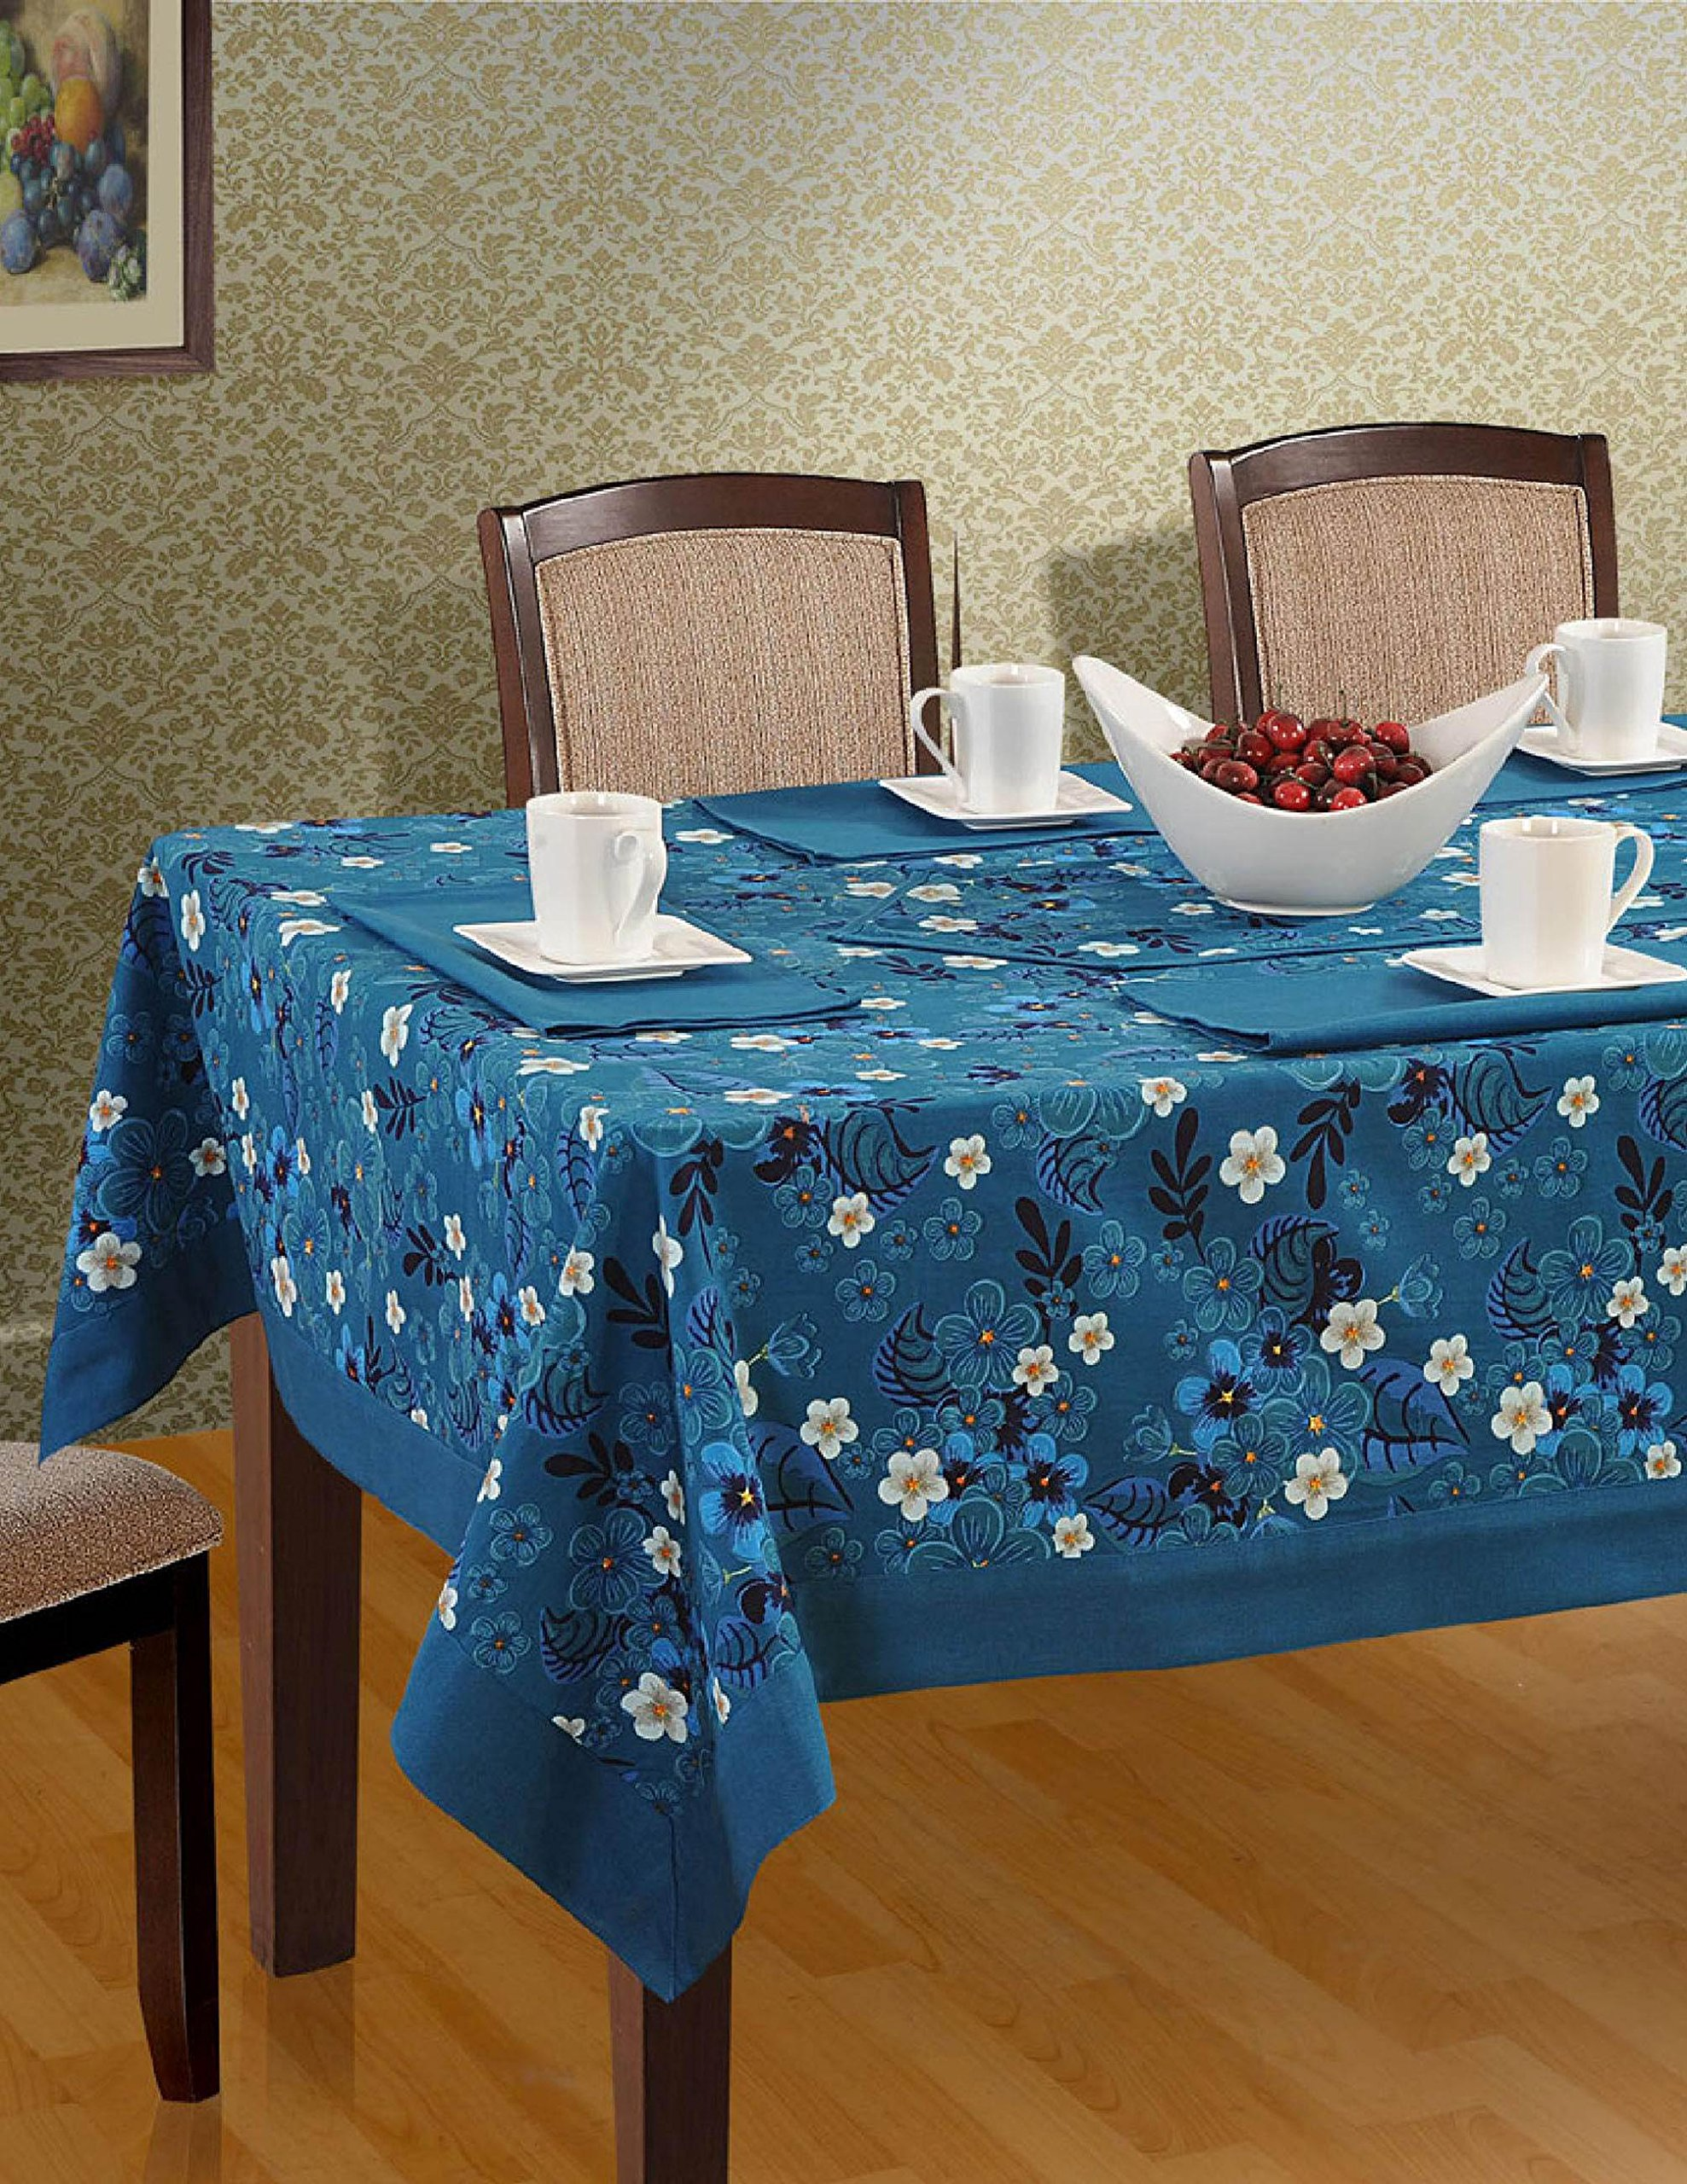 ShalinIndia Colorful Rectangular Patterned Cotton Tablecloth 144'' x 60'' Midnight Blue Blossom Floral